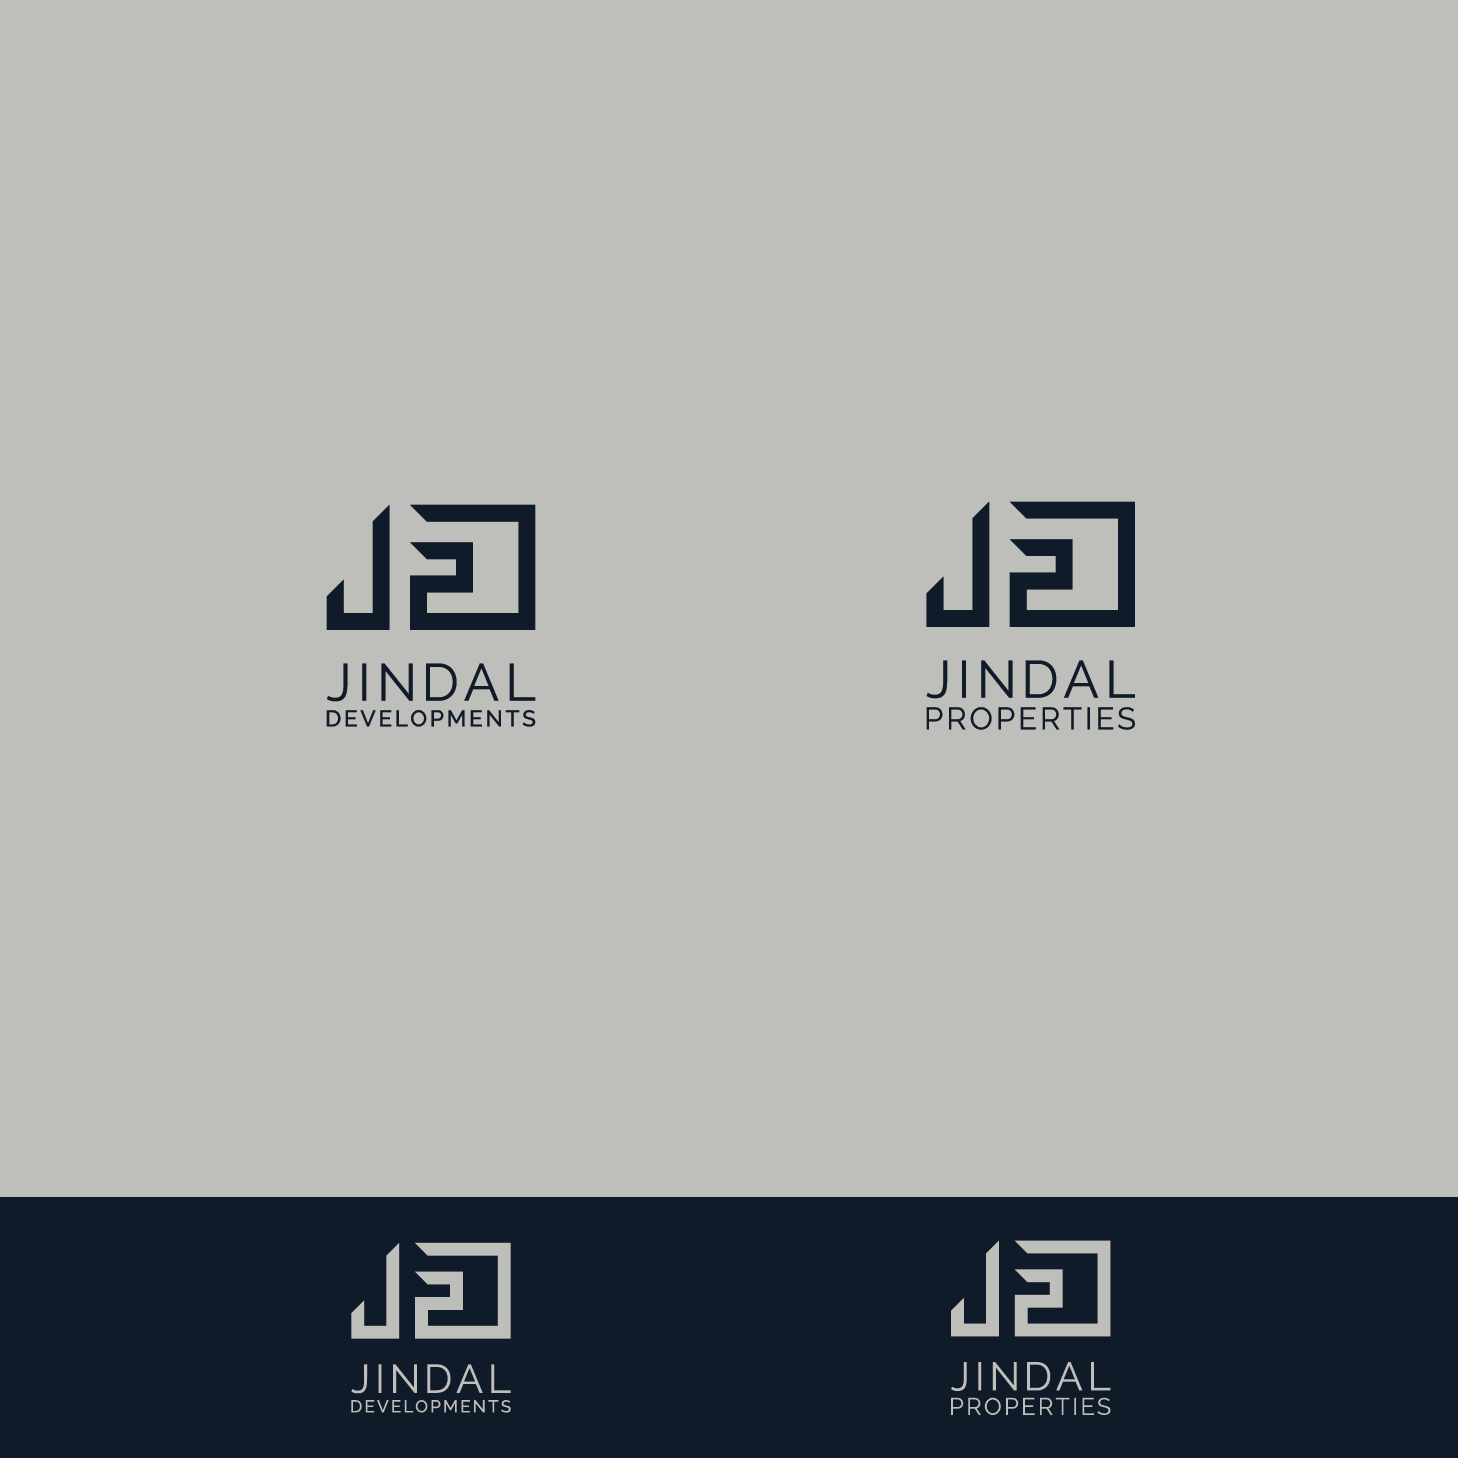 serious modern logo design for interchangeable between jindal developments and jindal properties the letter j d and p must be present in the logo by ana6 osijek design 19878850 jindal properties the letter j d